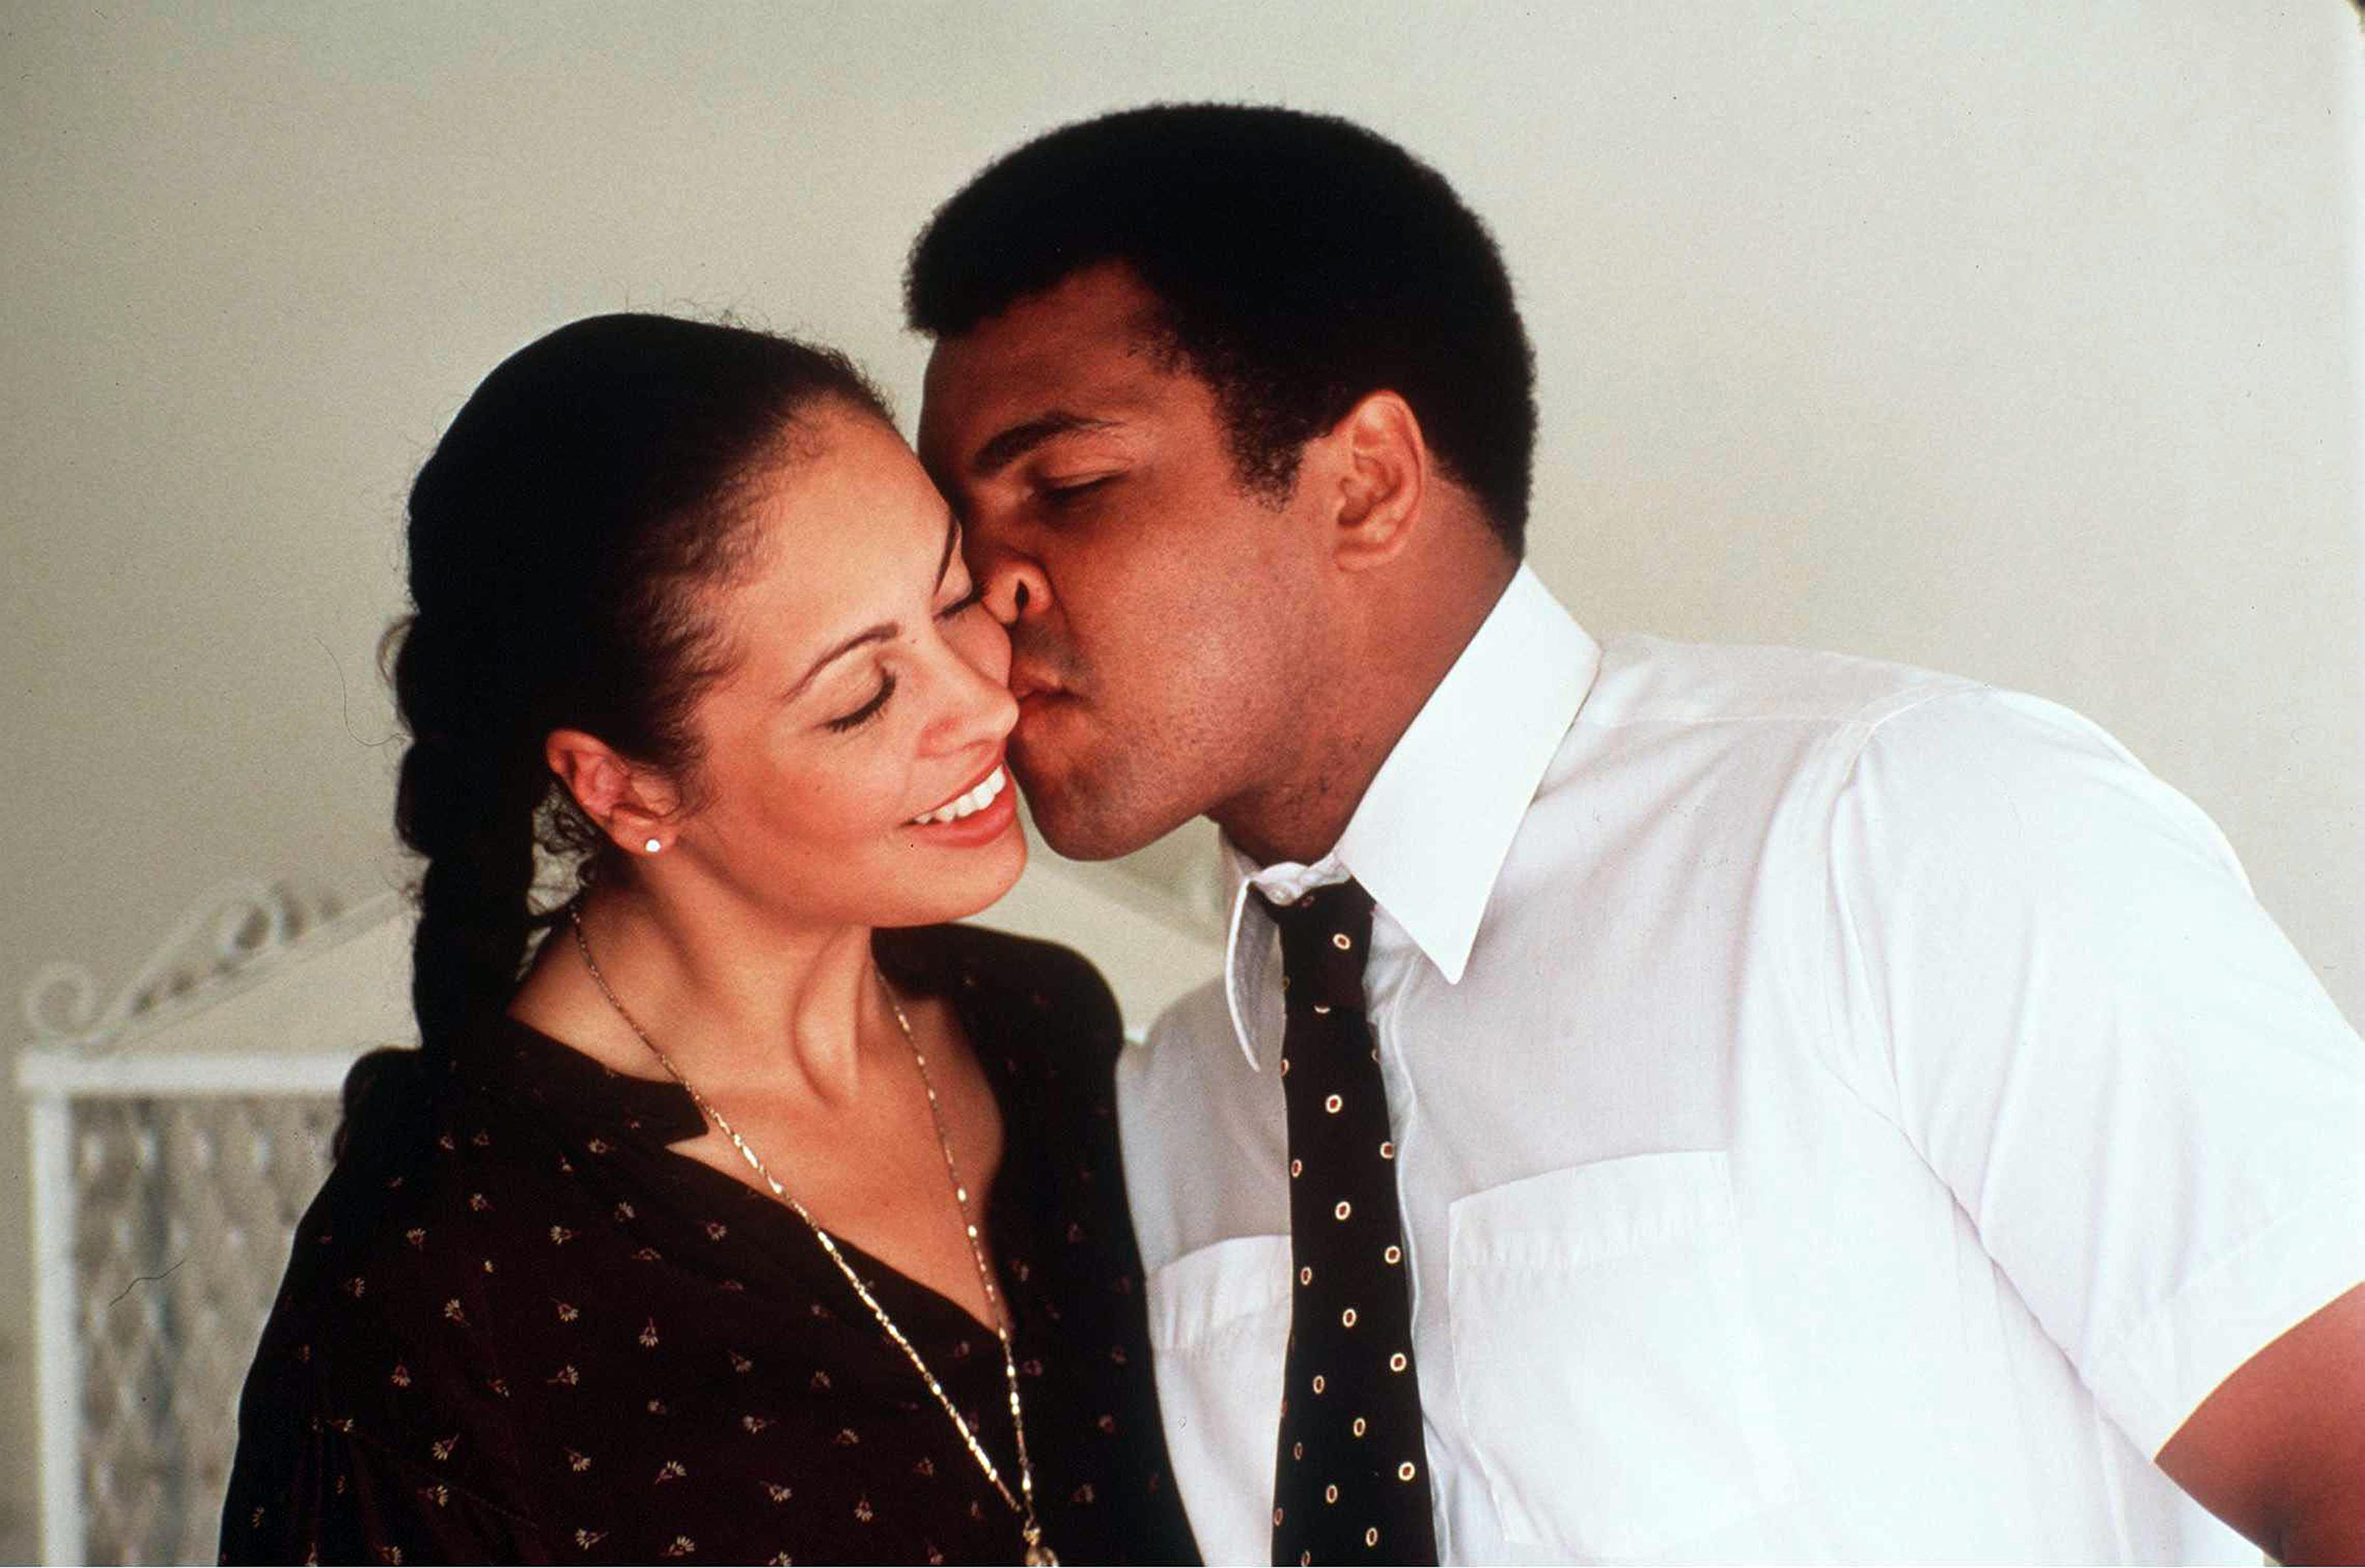 3113 LOS ANGELES CALIFORNIA May 3, 1980 Muhammad Ali and his third wife Veronica Porsche in their Hancock Park home before his last fight with Larry Holmes which took place in Las Vegas, 2nd October 1980., Image: 288875236, License: Rights-managed, Restrictions: , Model Release: no, Credit line: Profimedia, Pacific coast news